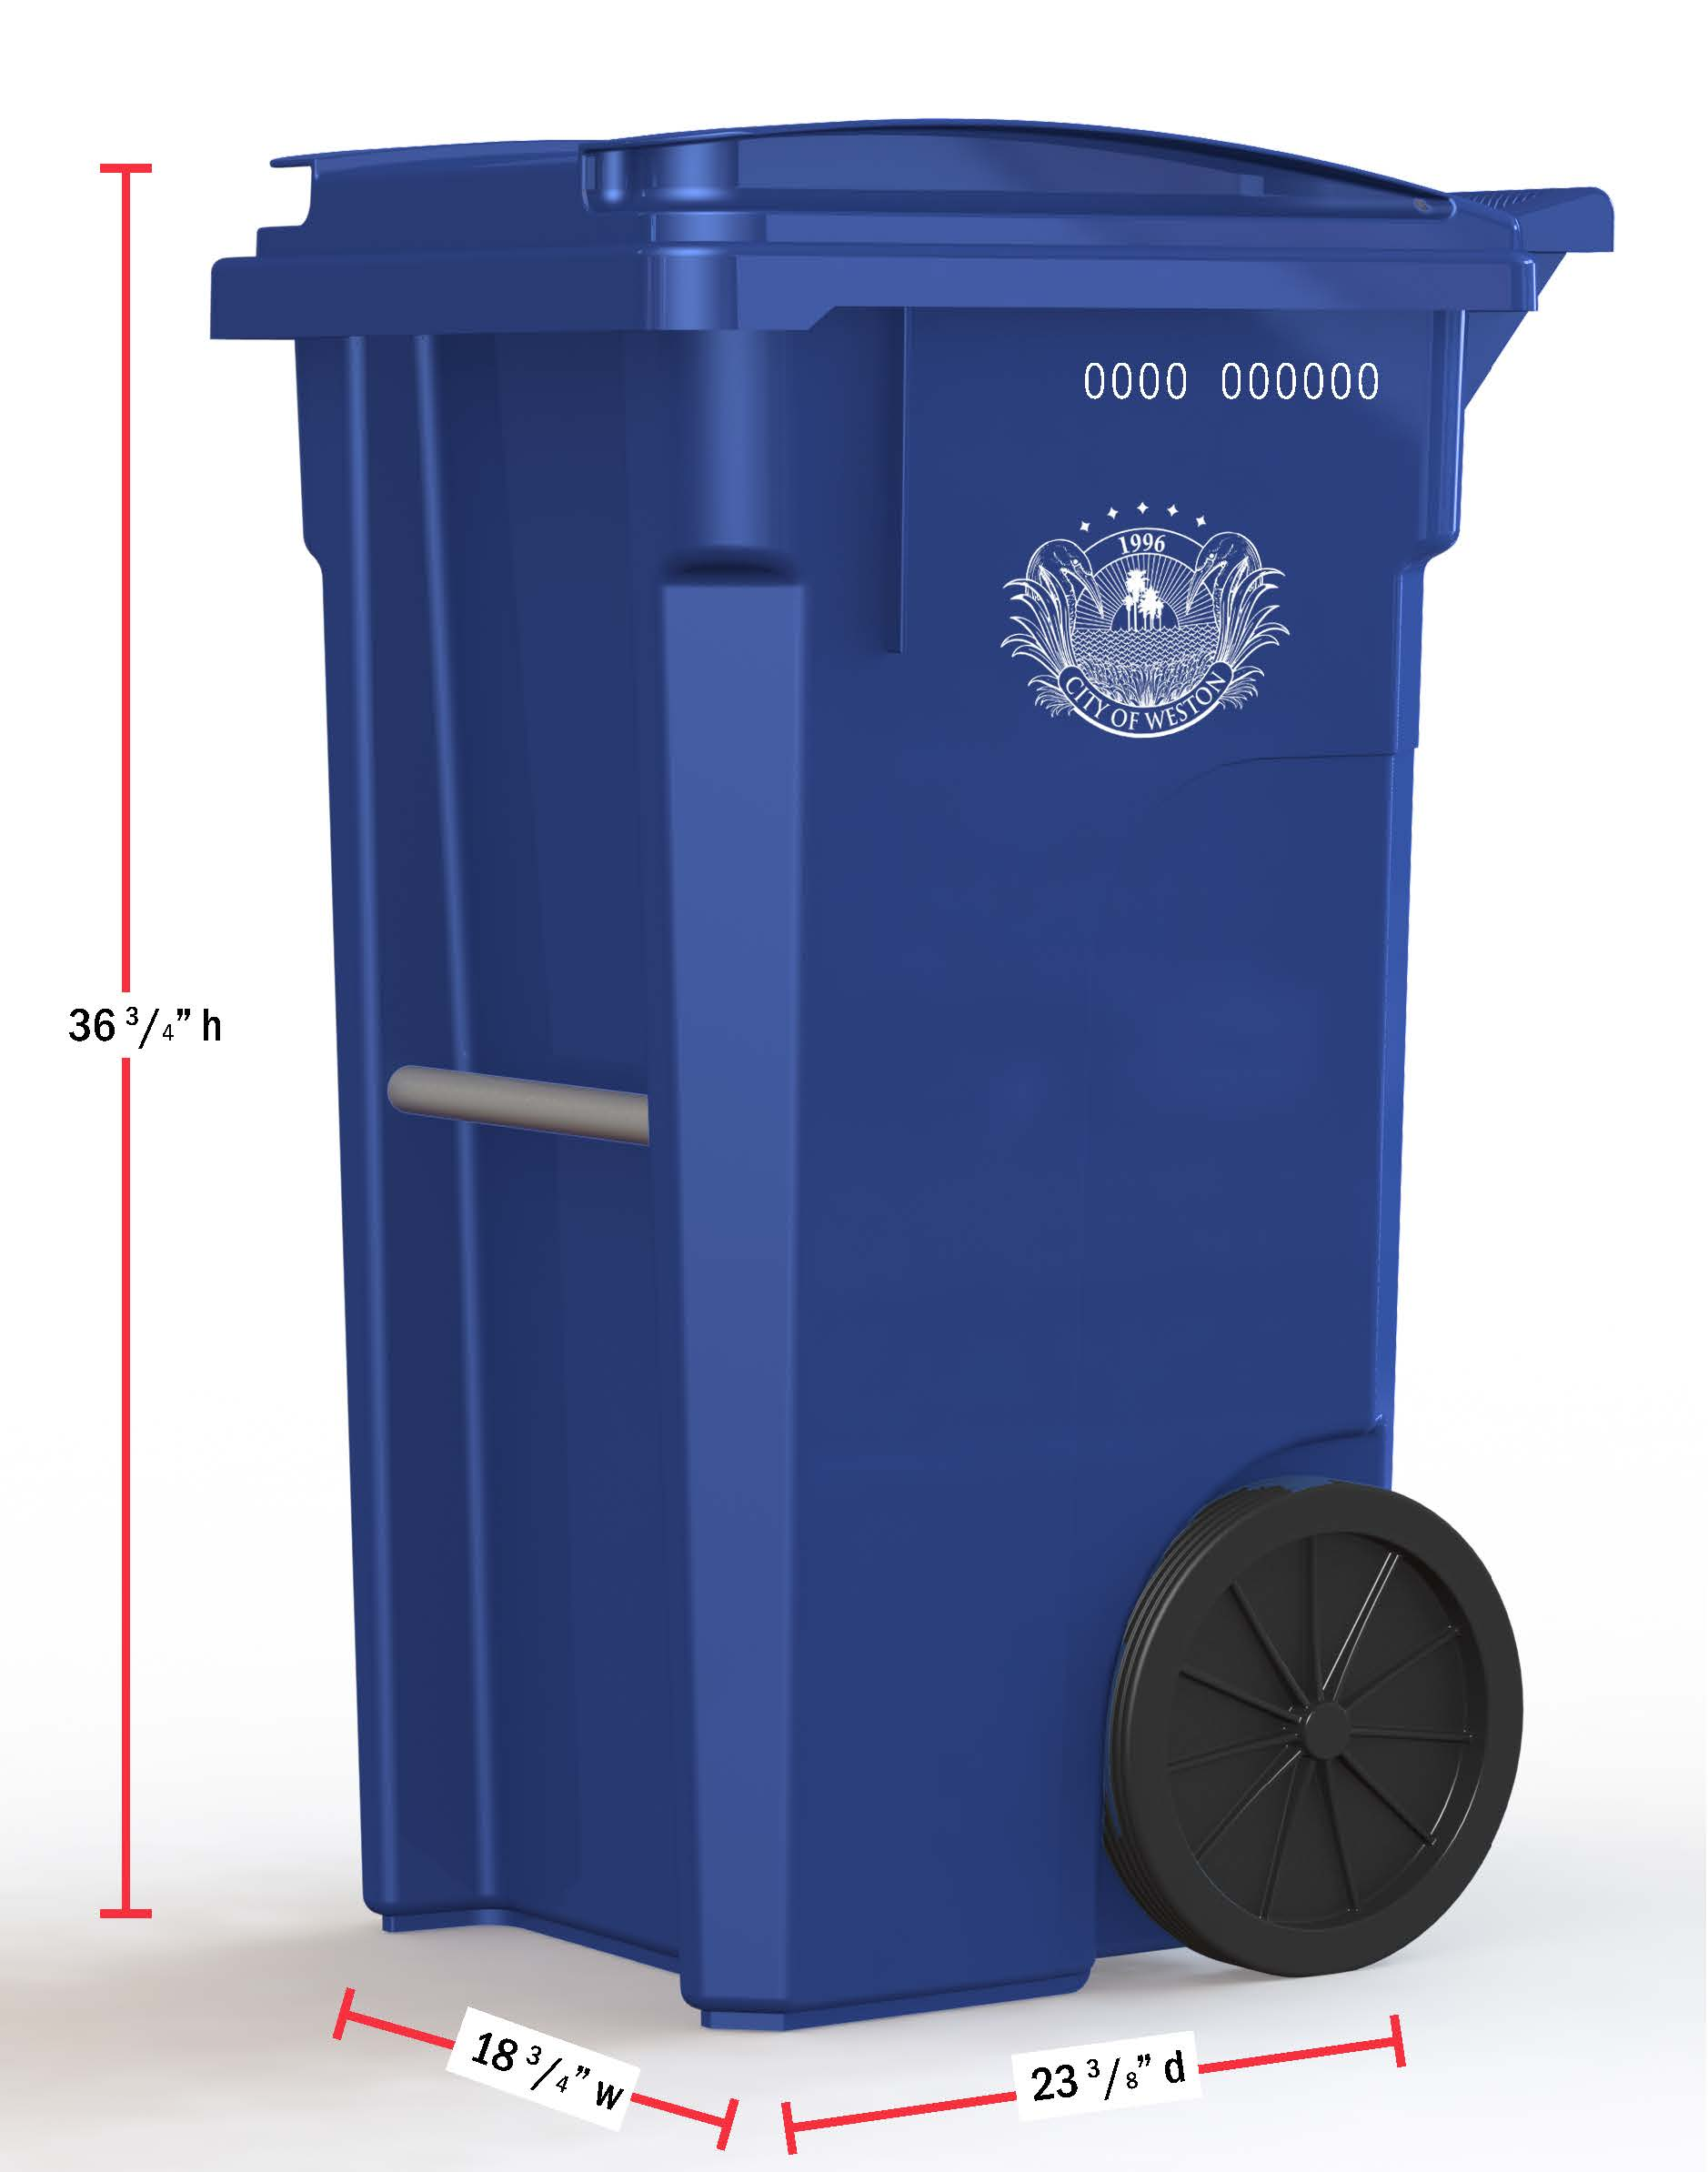 Recycling Cart with dimensions